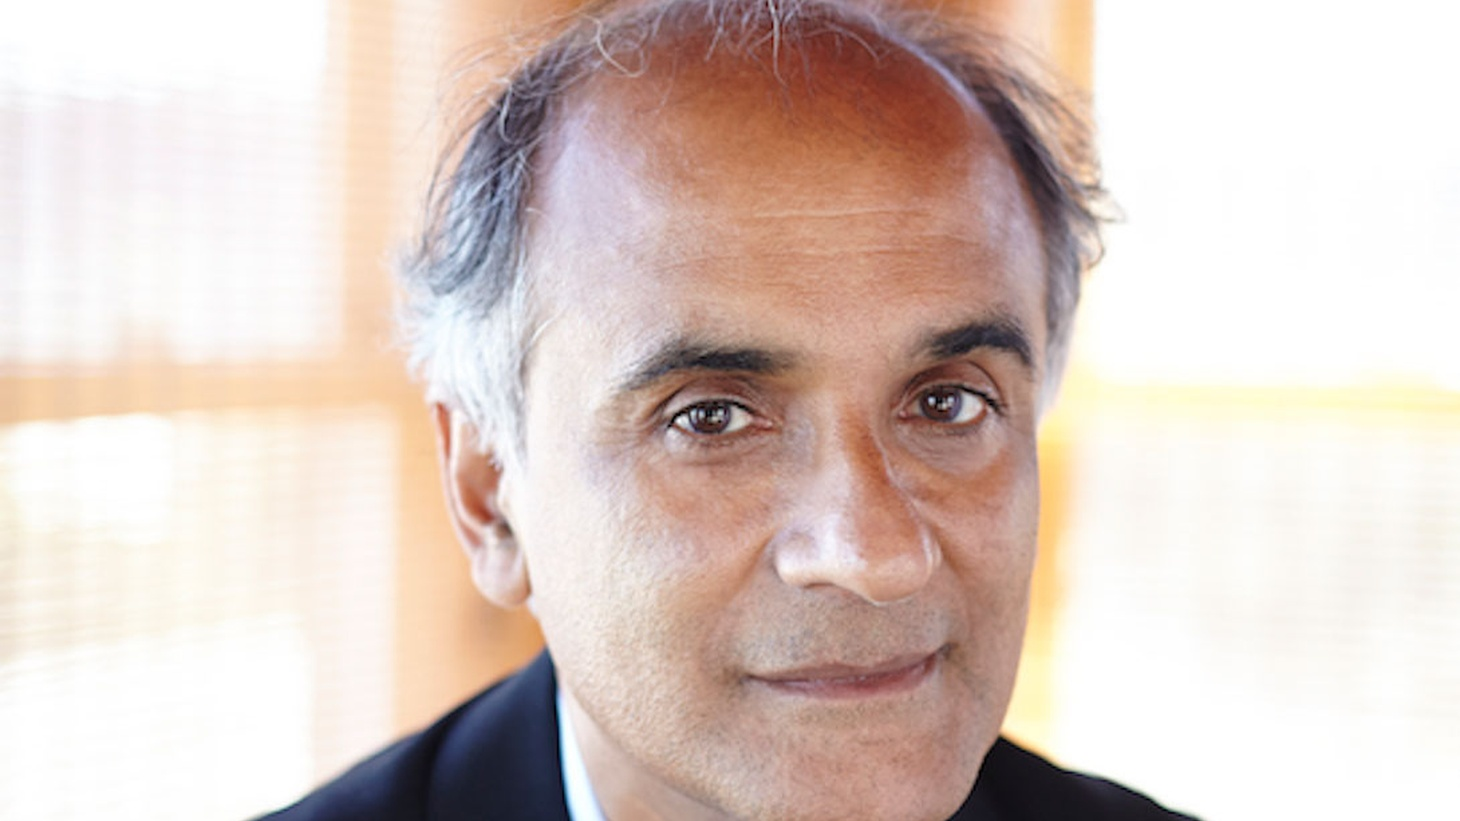 As those who lost their homes in the Thomas Fire begin to rebuild, author and Santa Barbara's own Pico Iyer joins us to talk about his own experience losing everything in a fire, and the deeper lessons he learned.